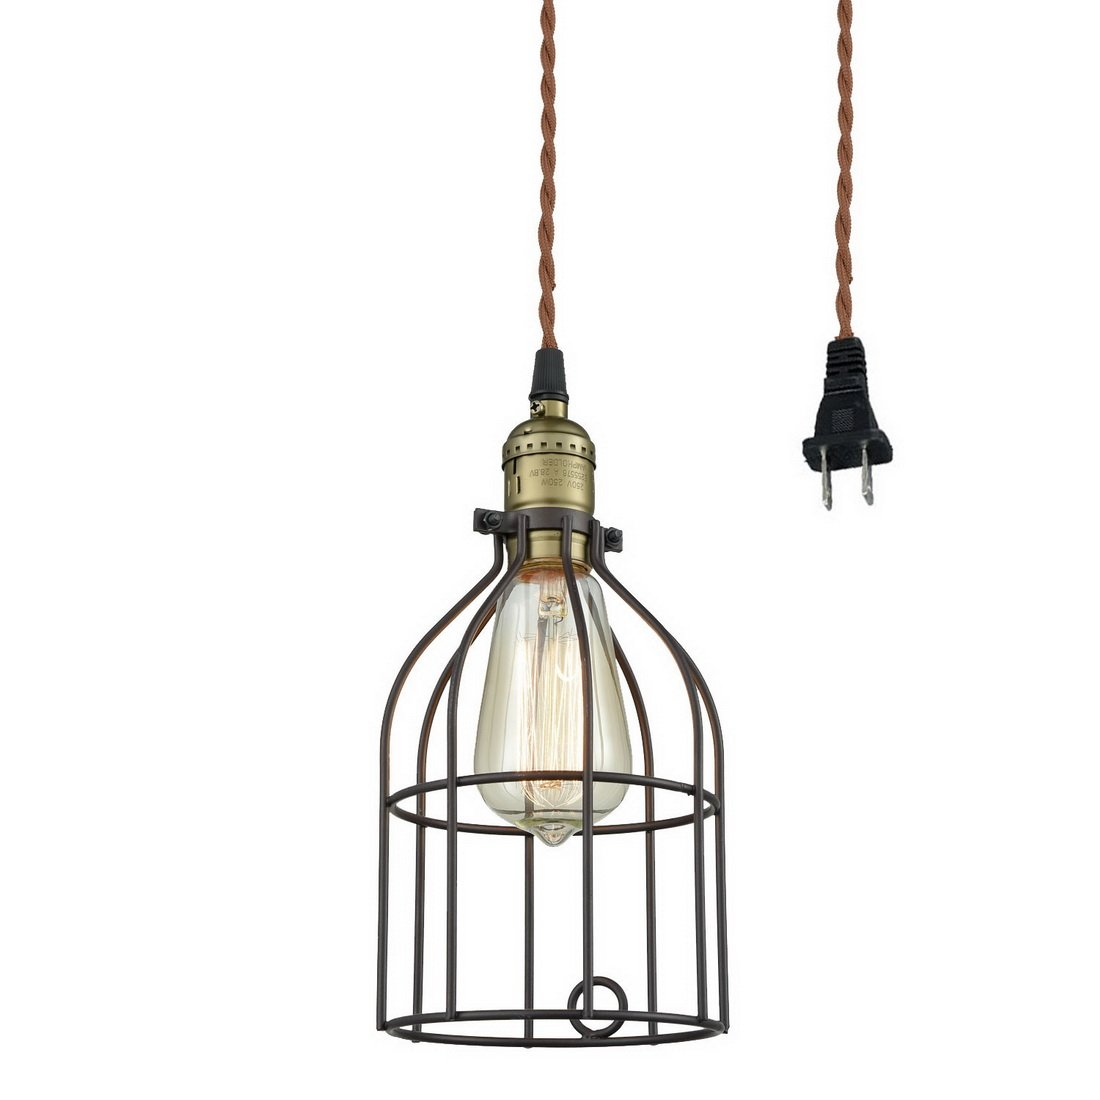 Truelite Industrial Vintage Style Mini Plug-in Pendant Light, Metal Bird Cage Edison Hanging Light with Toggle Switch